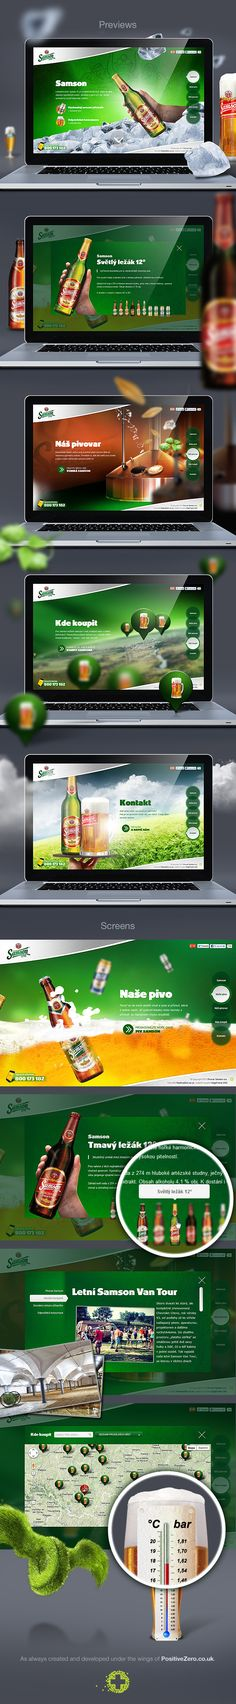 Samson brewery by PositiveZero.co.uk , via Behance